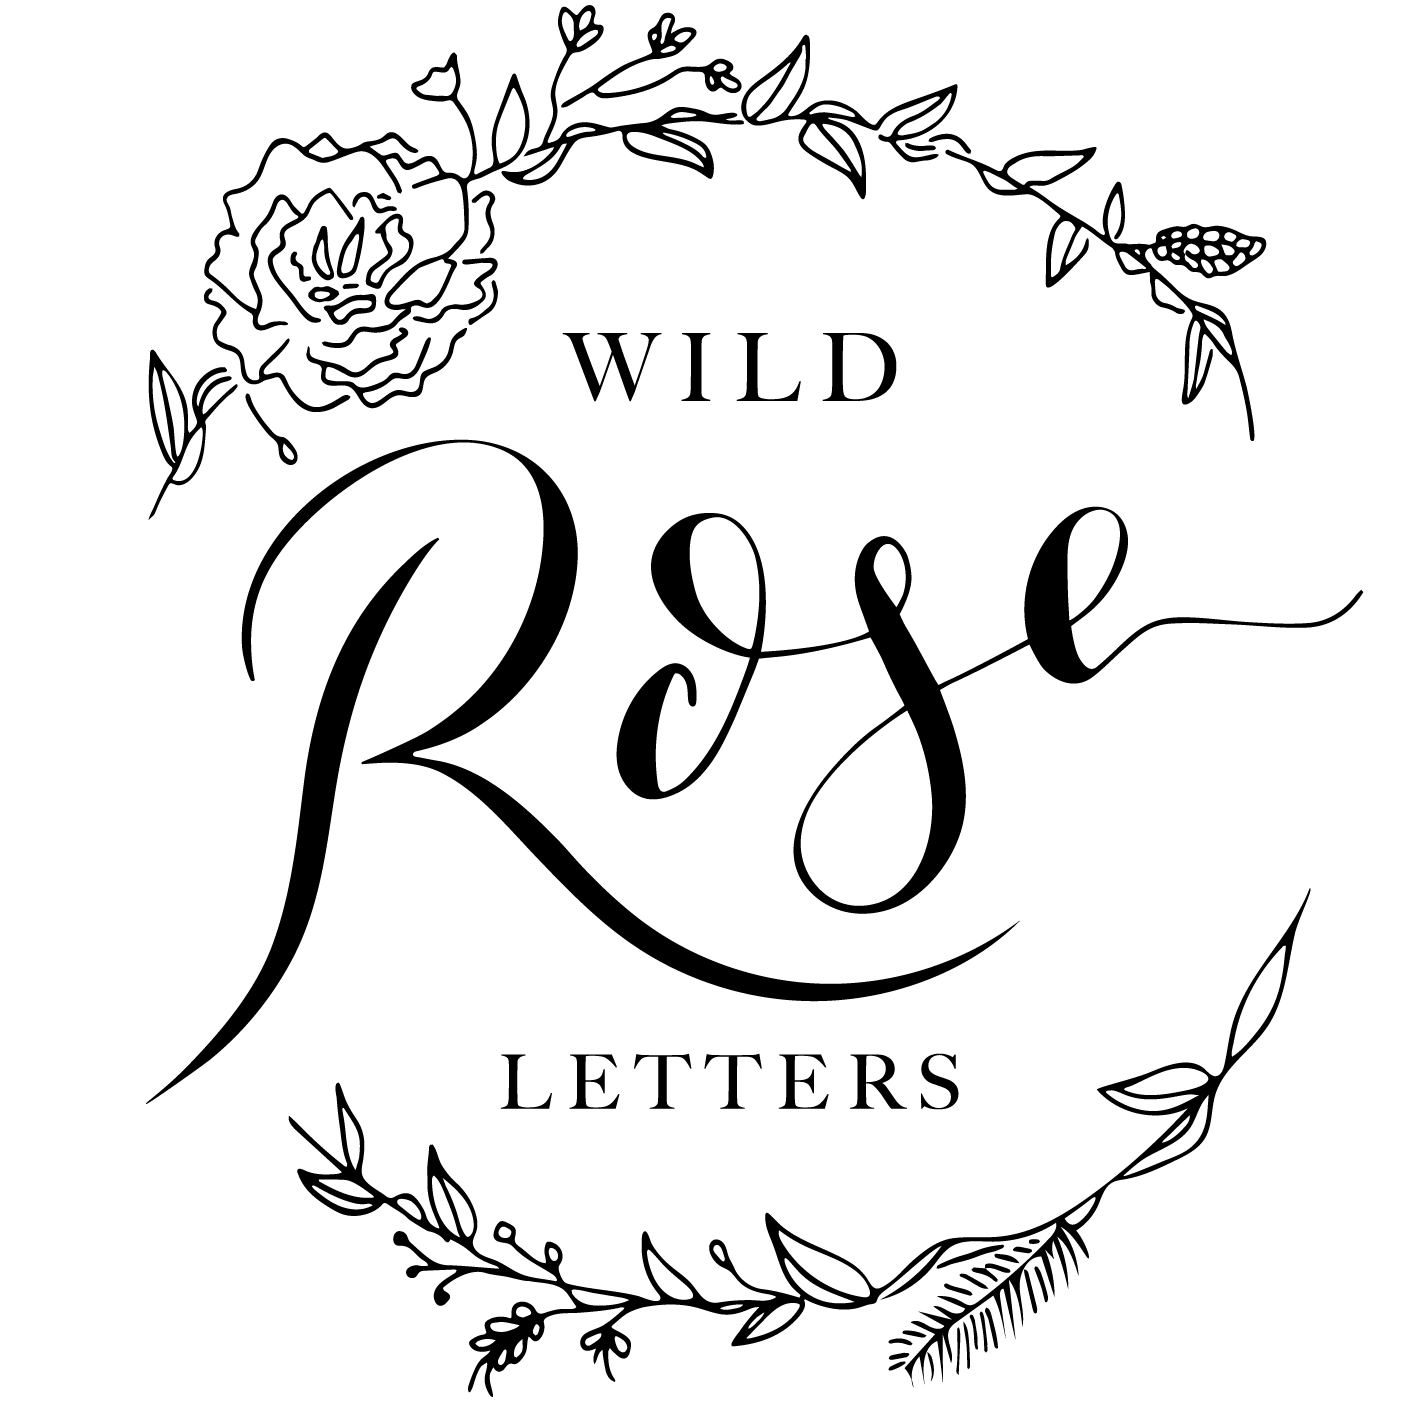 Drawing chrome lettering. Wild rose letters